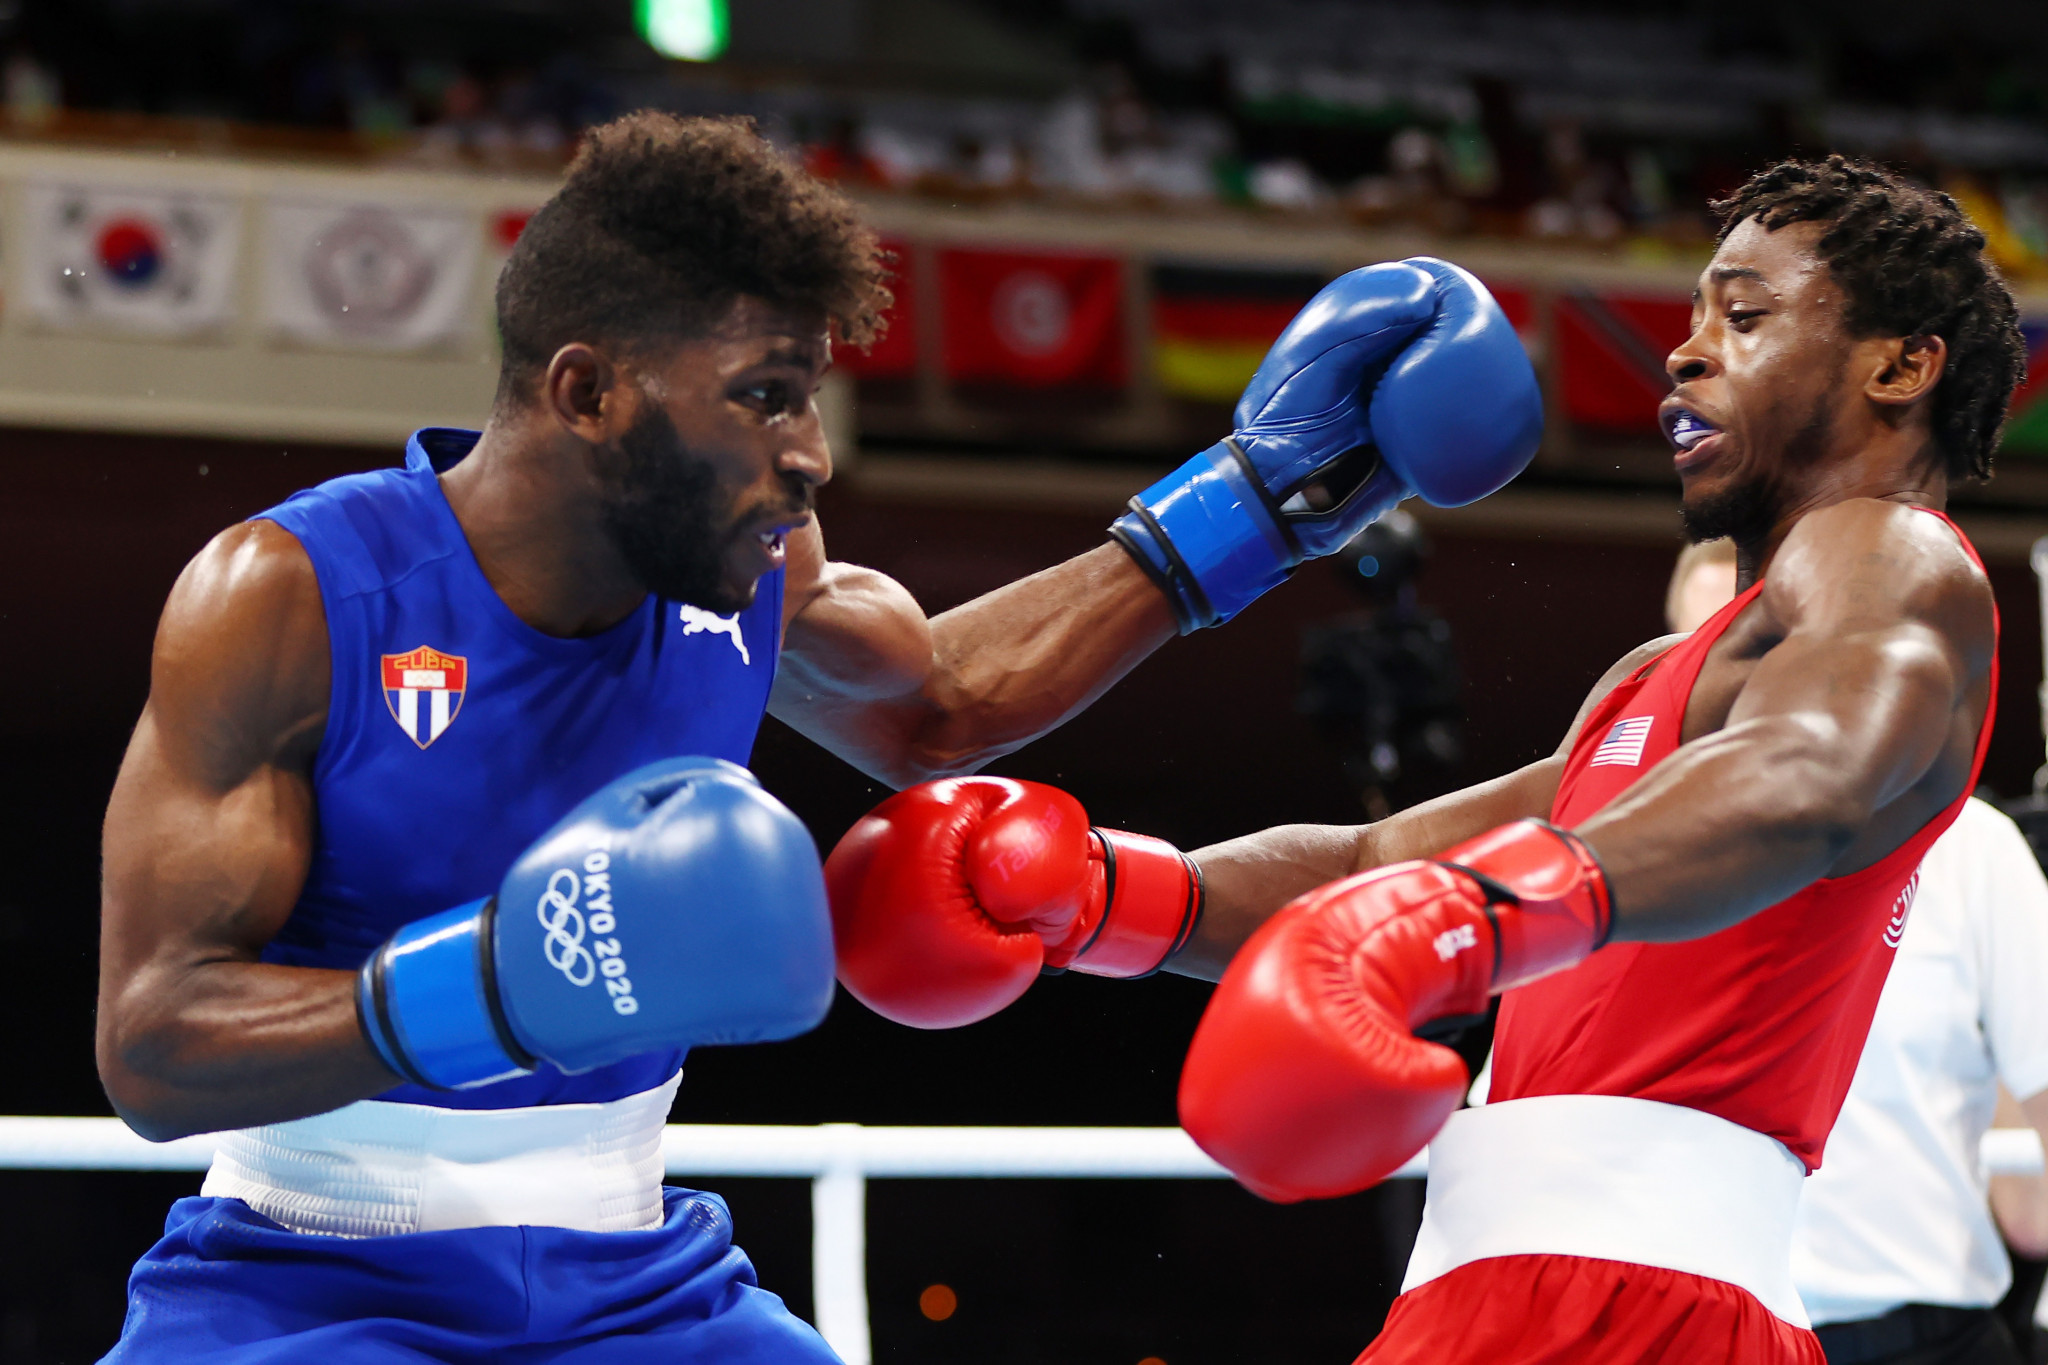 The Olympic boxing tournament at Tokyo 2020 was largely considered a success and was free of the controversies that overshadowed the event at Rio 2016 ©Getty Images